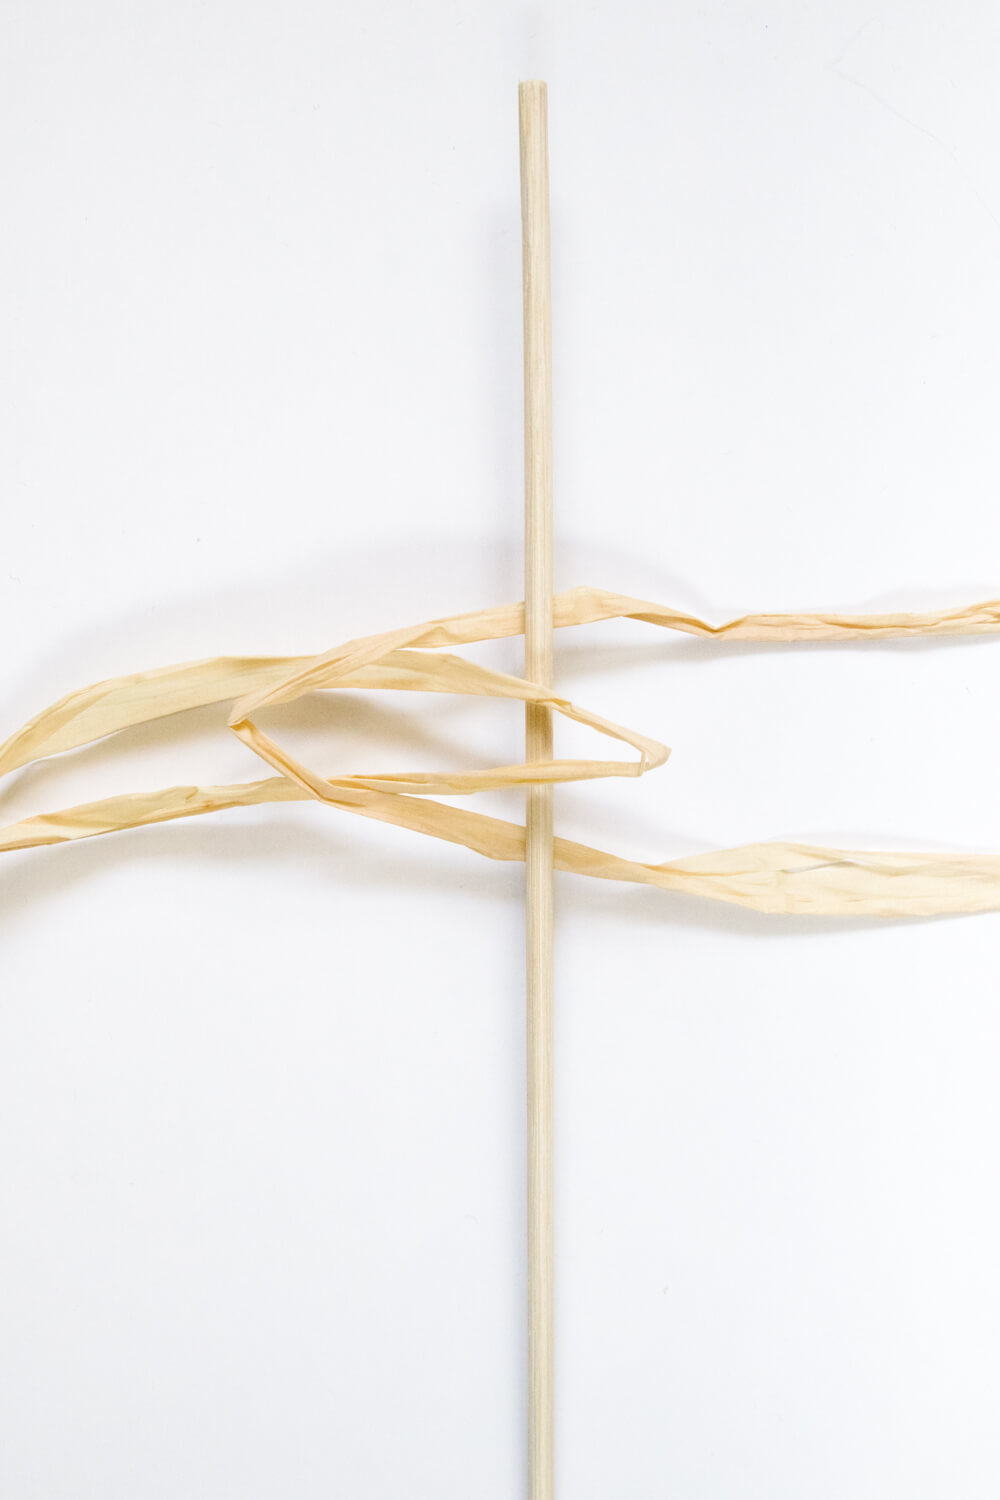 Take another folded raffia piece and tuck the folded end underneath and into the loop. Carefully take the first raffia loose ends and tuck them up into the loop created by the second loop.